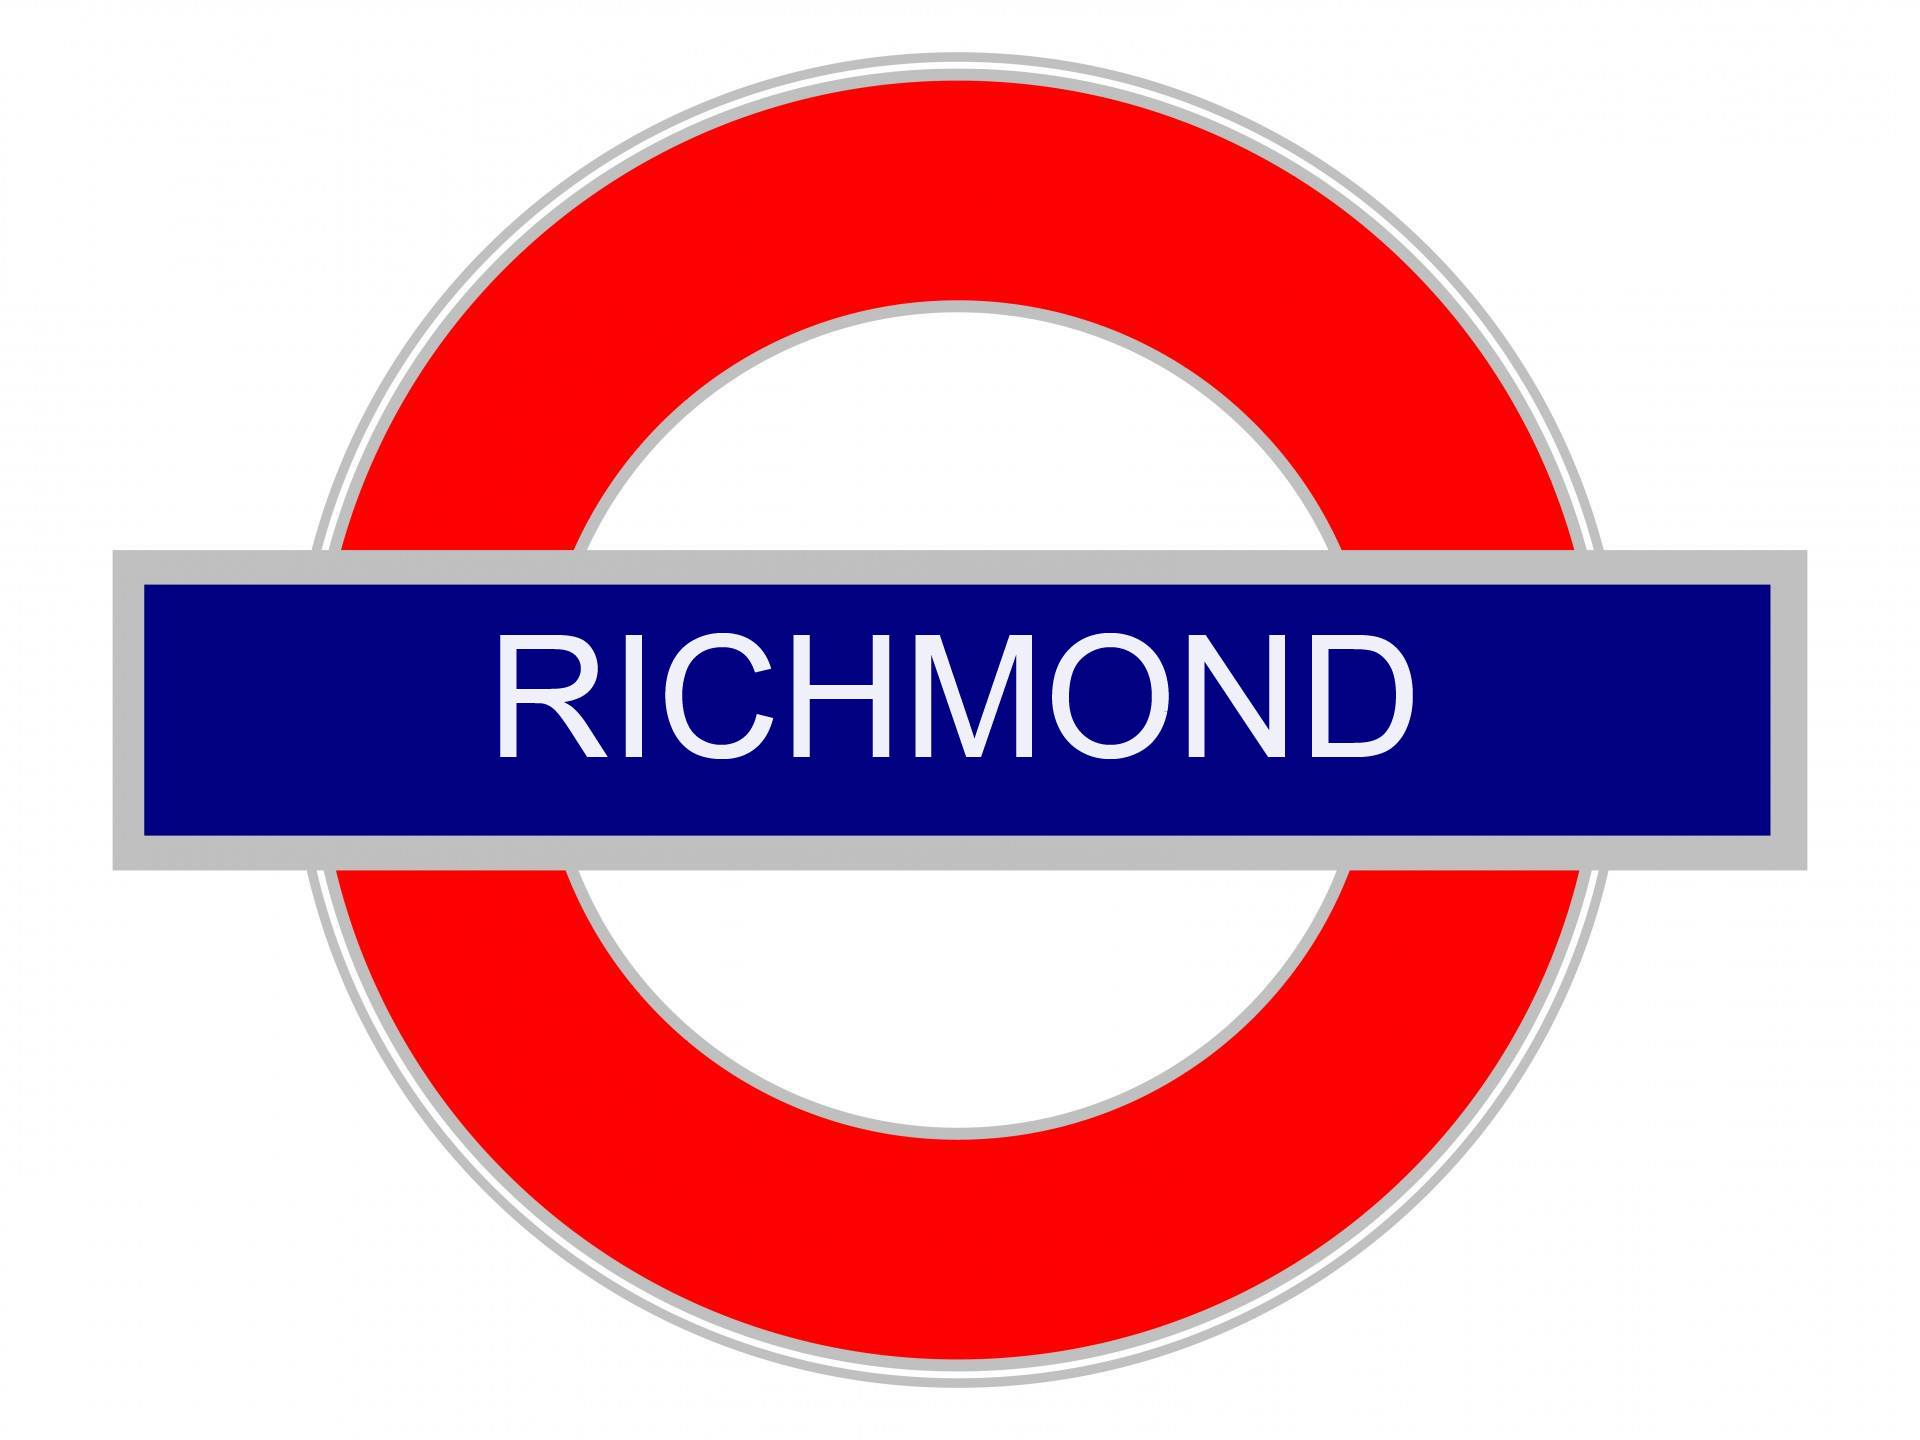 Richmond Underground Station